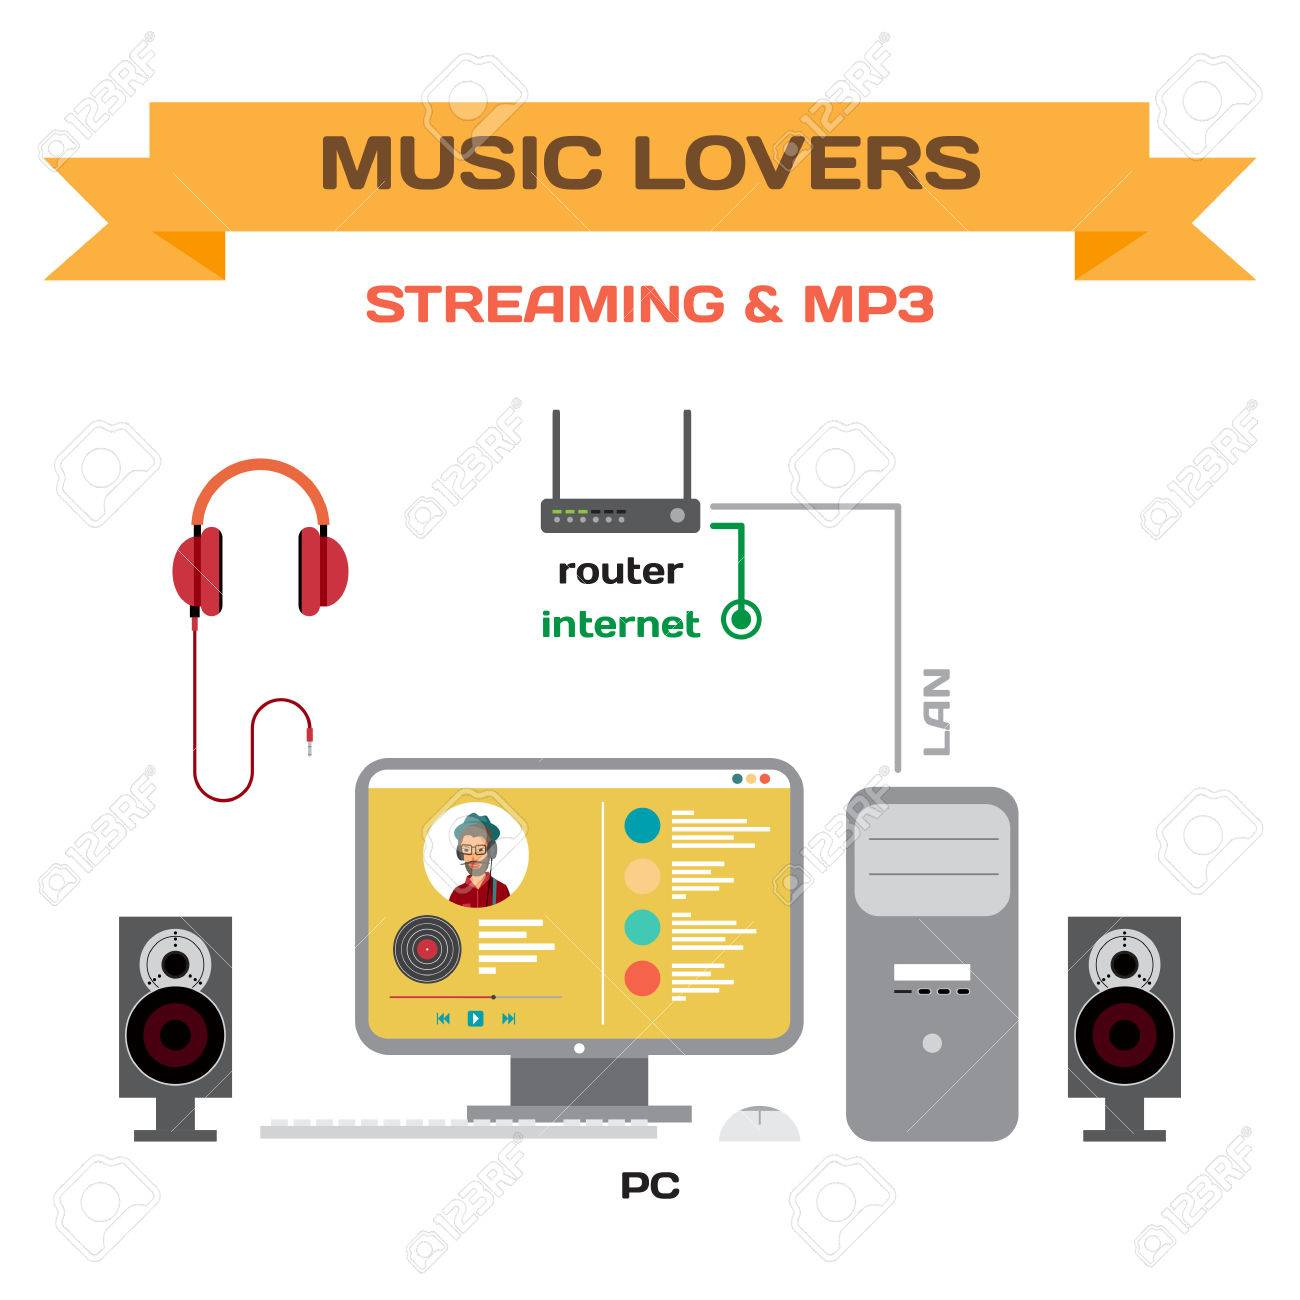 wiring a music system for home use listen music flat design vector wiring a music system for home use listen music flat design connect the computer to your speakers and router home listen mp3 and streaming for